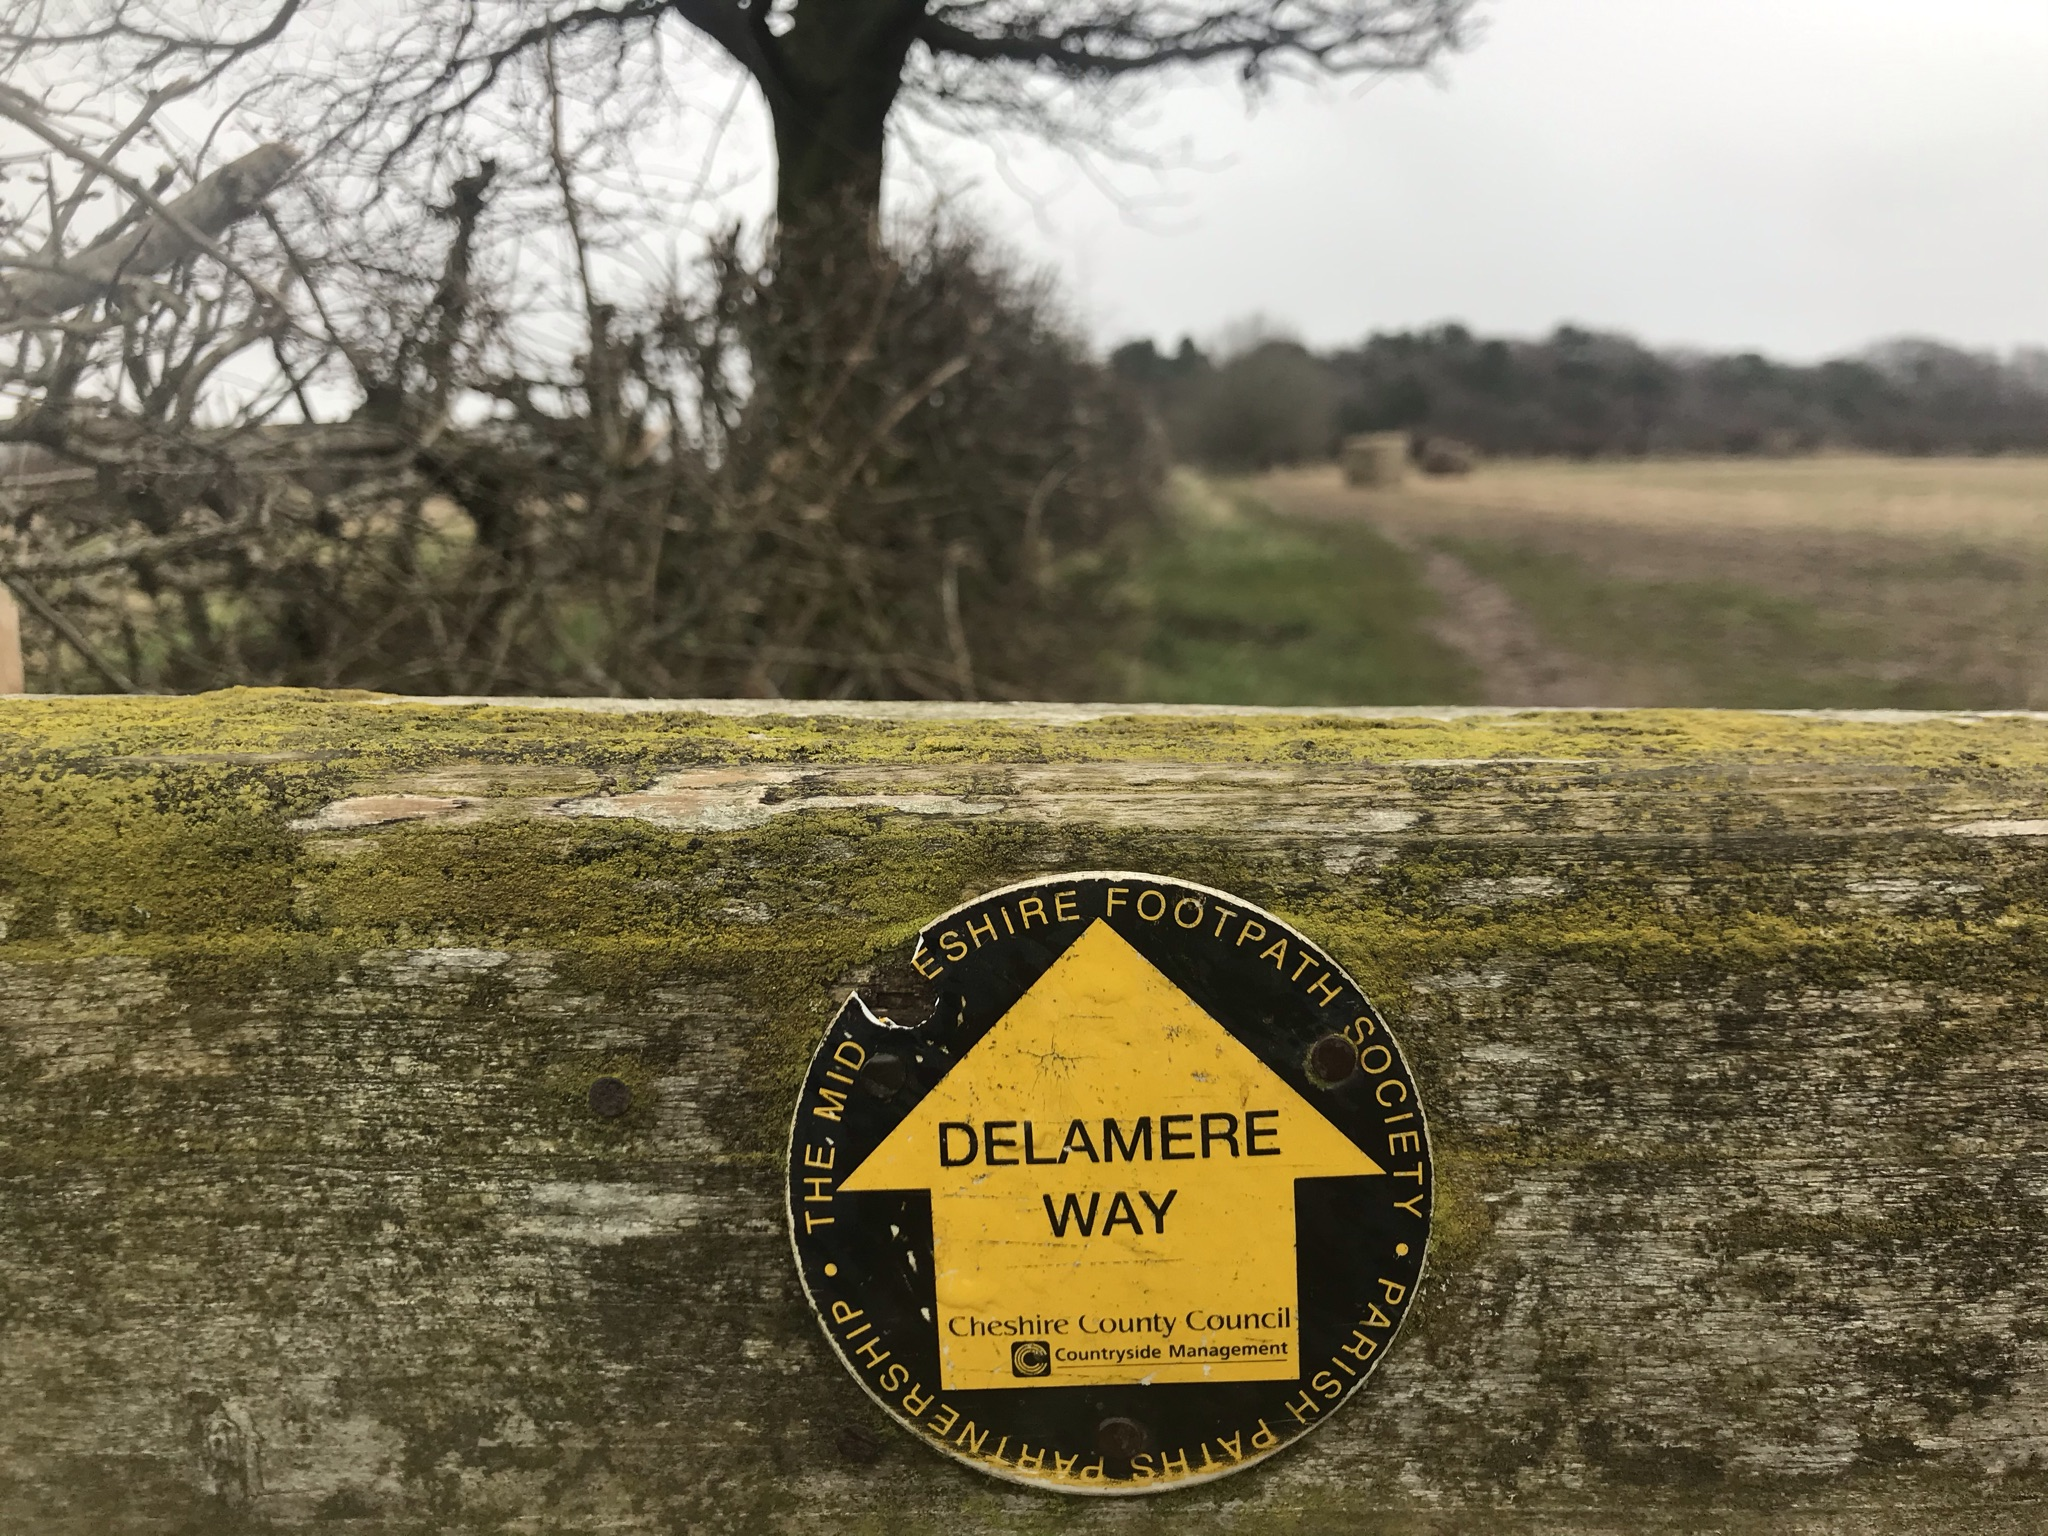 A tatty Delamere Way waymarker on lichen covered wood. The background is out of focus bare hedge and field